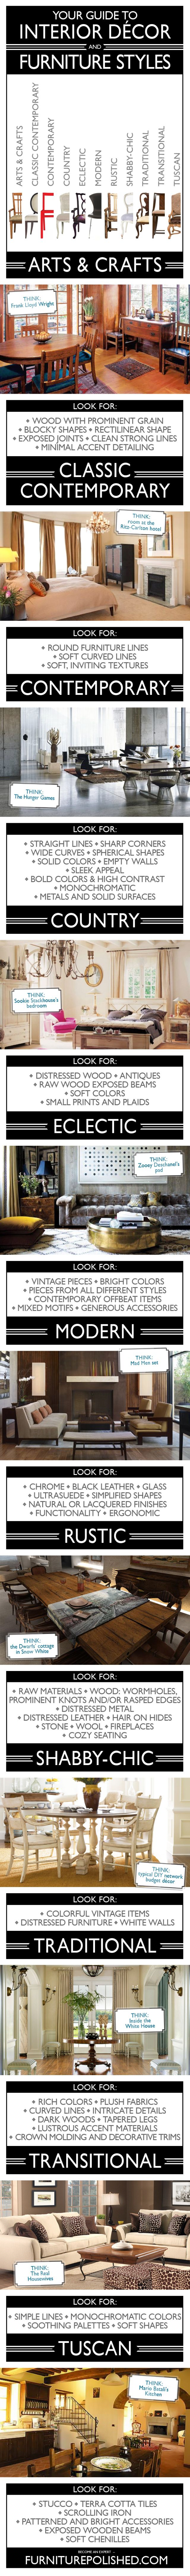 Decide On A Furniture And Interior Design Style For Your Home   50 Amazingly